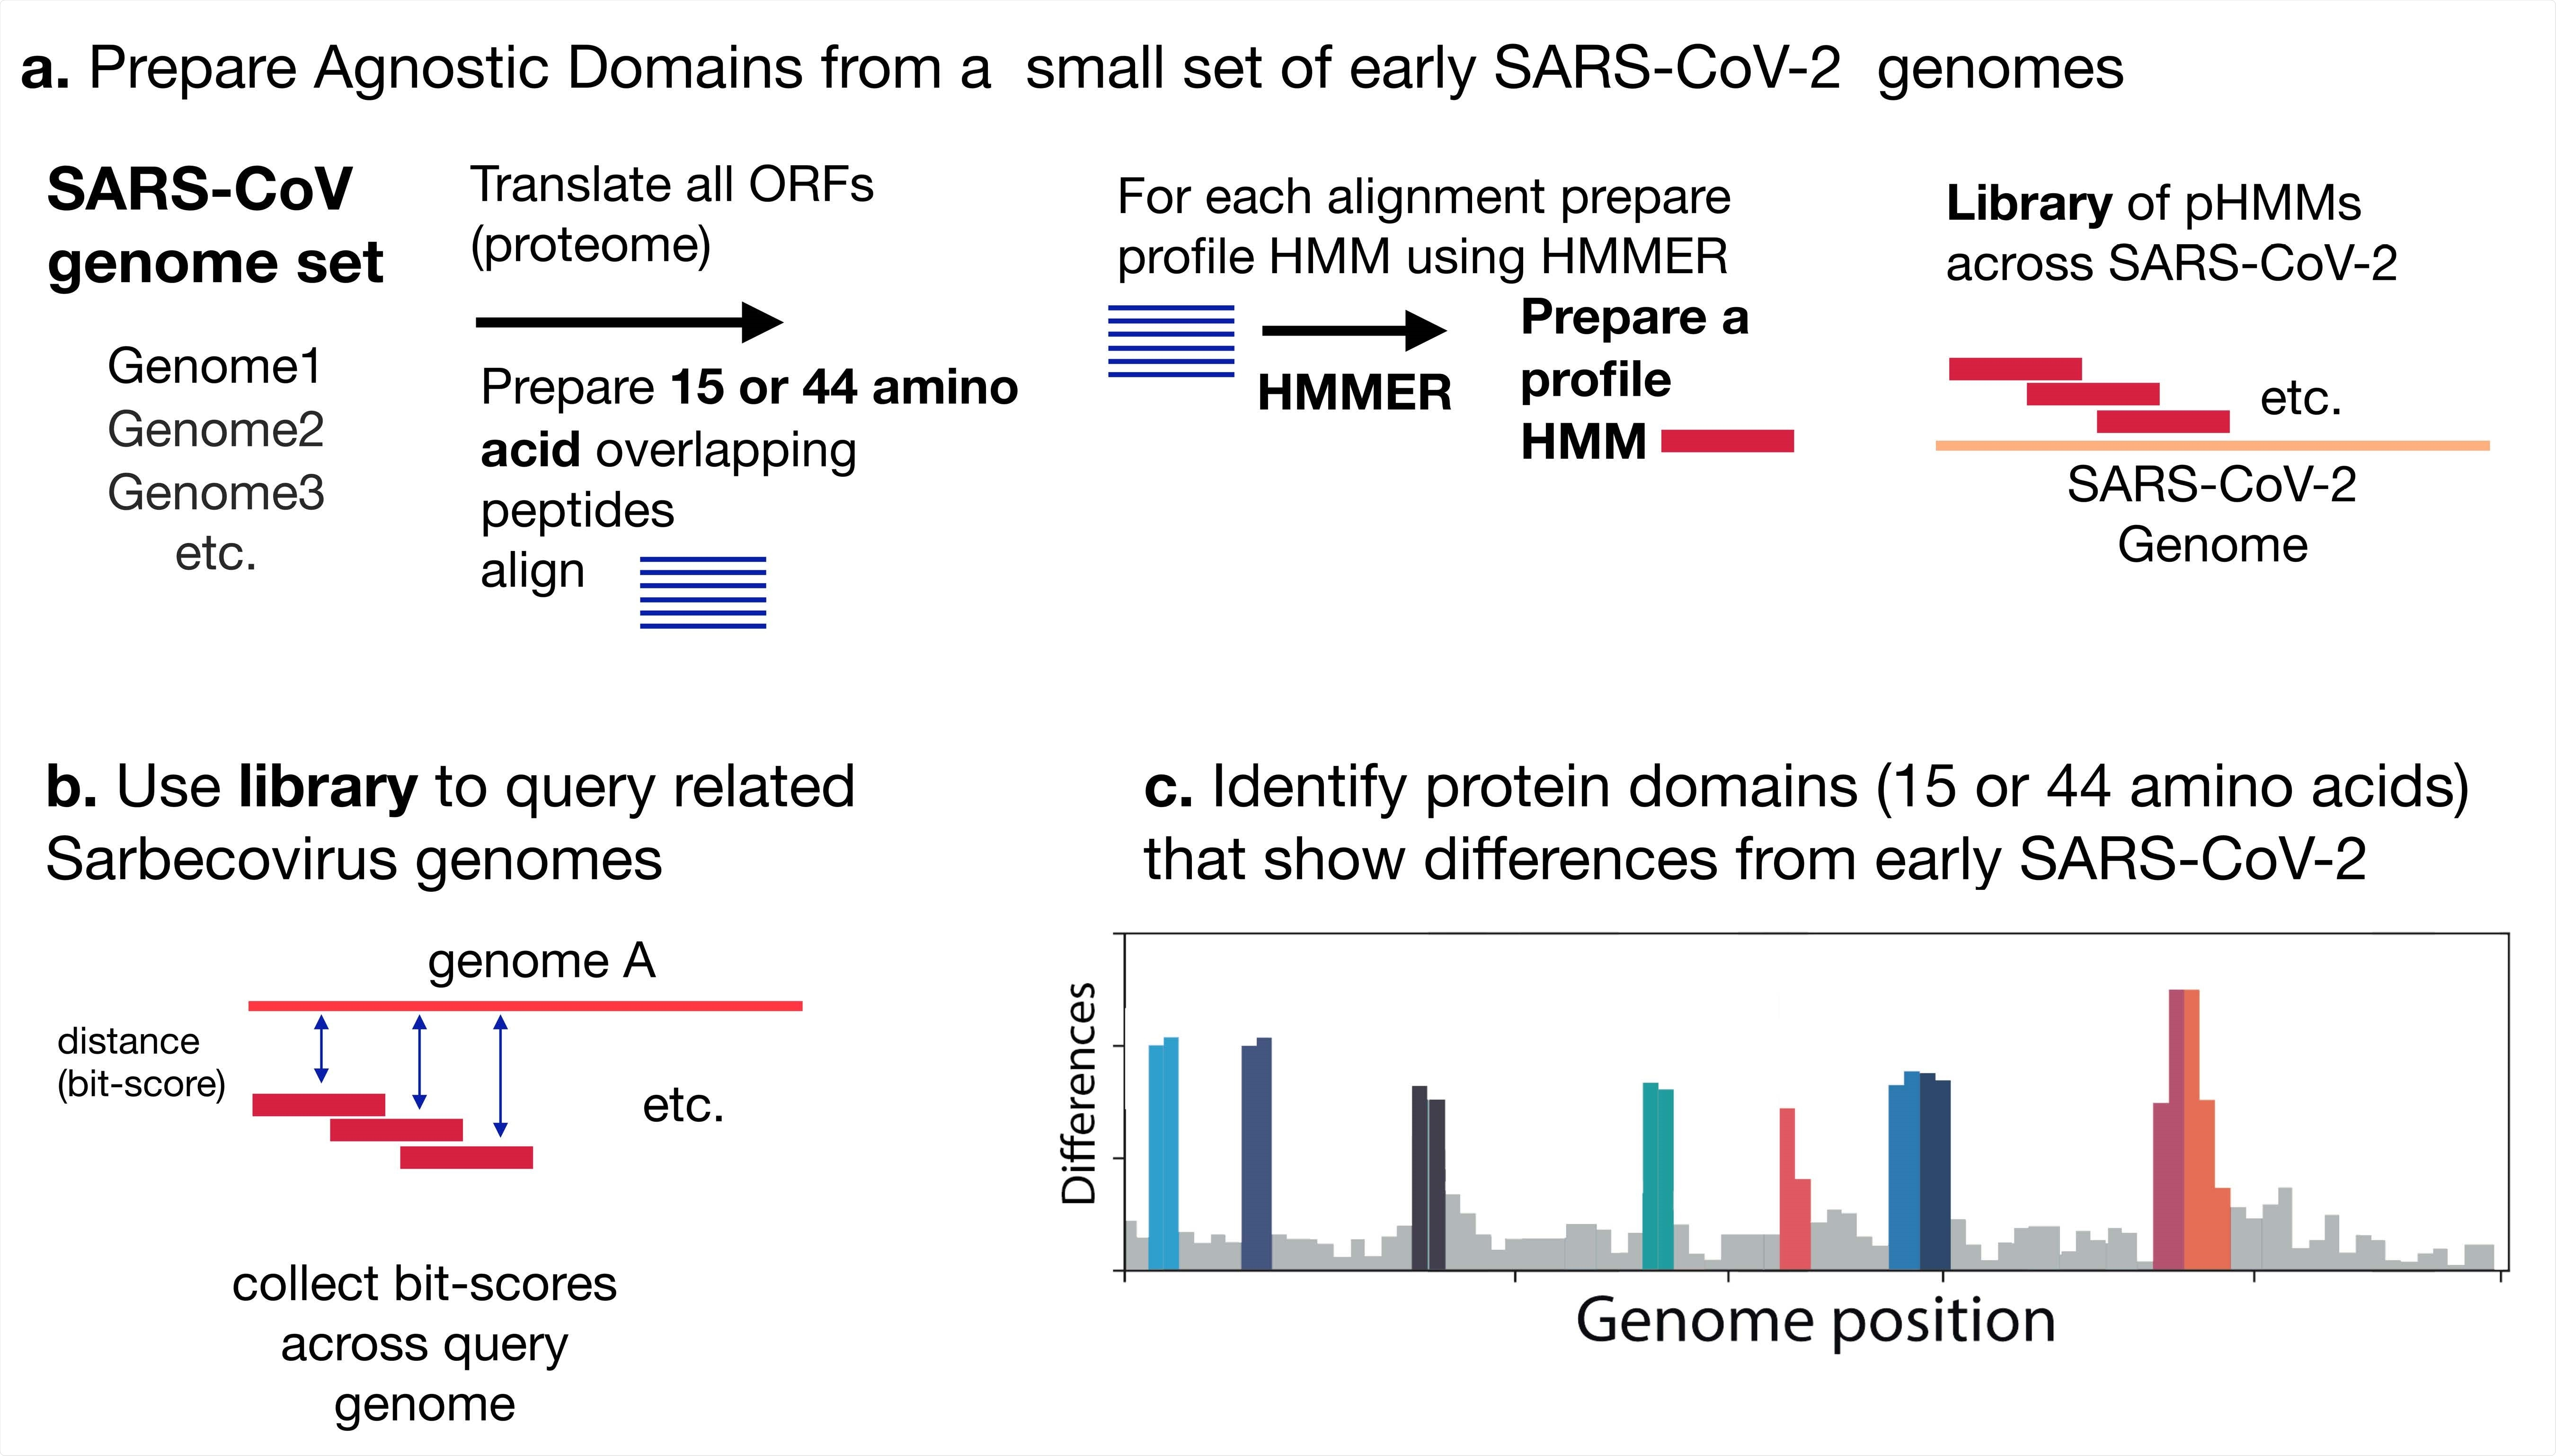 Analysis scheme. (A) Profile Hidden Markov Model (pHMM) domains were generated from a set of 35 early lineage B SARS-CoV-2 genome sequences. All open reading frames were translated and then sliced into either 44 amino acid peptides with a step size of 22 amino acids or 15 amino acid peptides with a step size of 8 amino acid. The peptides were clustered using Uclust (13), aligned with MAFFT (14) and then each alignment was built into a pHMM using HMMER-3 (10). (B) The set of pHMMs were used to query Sarbecovirus genome sequences, bit scores were collected as a measure of similarity between each pHMM and the query sequence. (C) Bit-scores were gathered an analyzed to detect regions that differ between early SARS-CoV-2 genomes and query genomes.